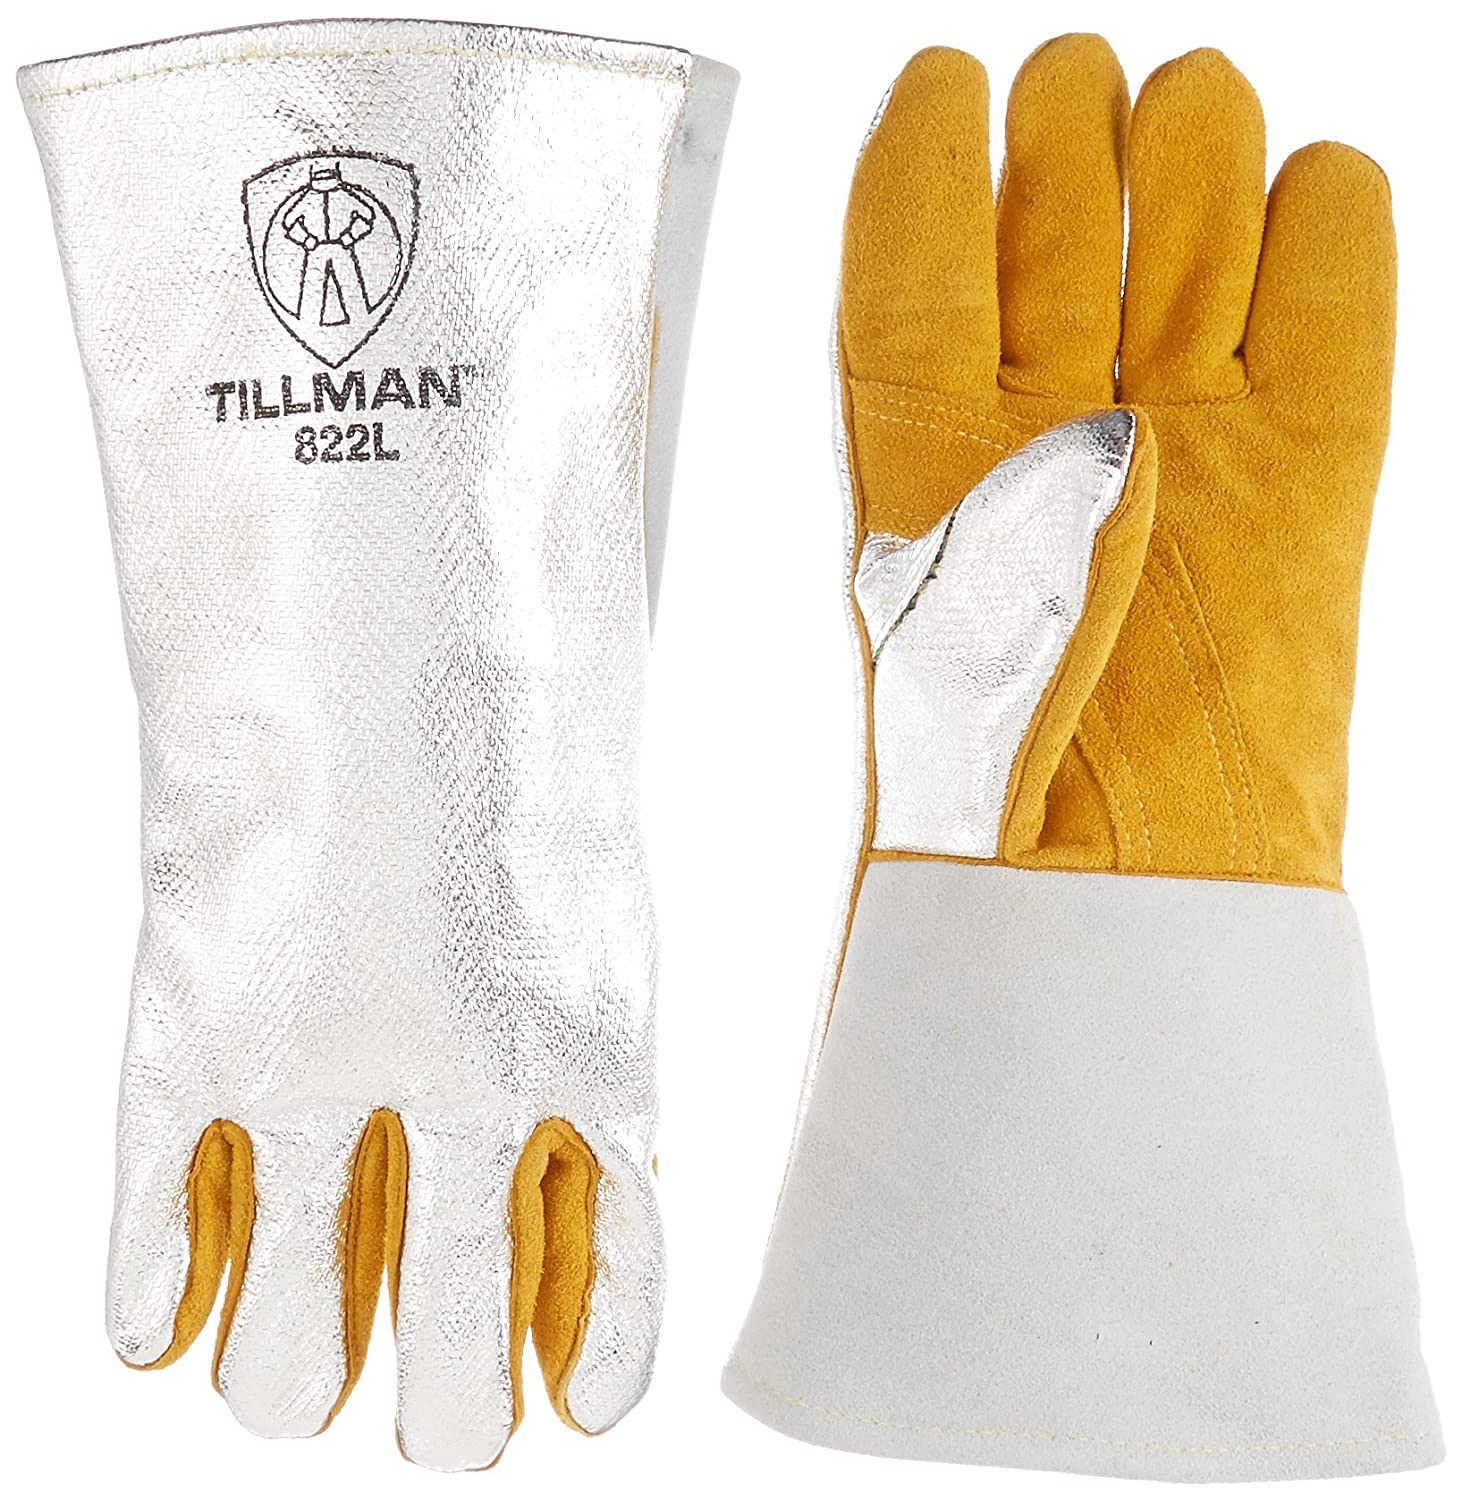 Tillman leather work gloves - John Tillman And Co 822l Leather And Aluminized Kevlar Wool Lined Aluminized Welding Glove With Gauntlet Cuff Large Silver Brown Amazon Com Industrial